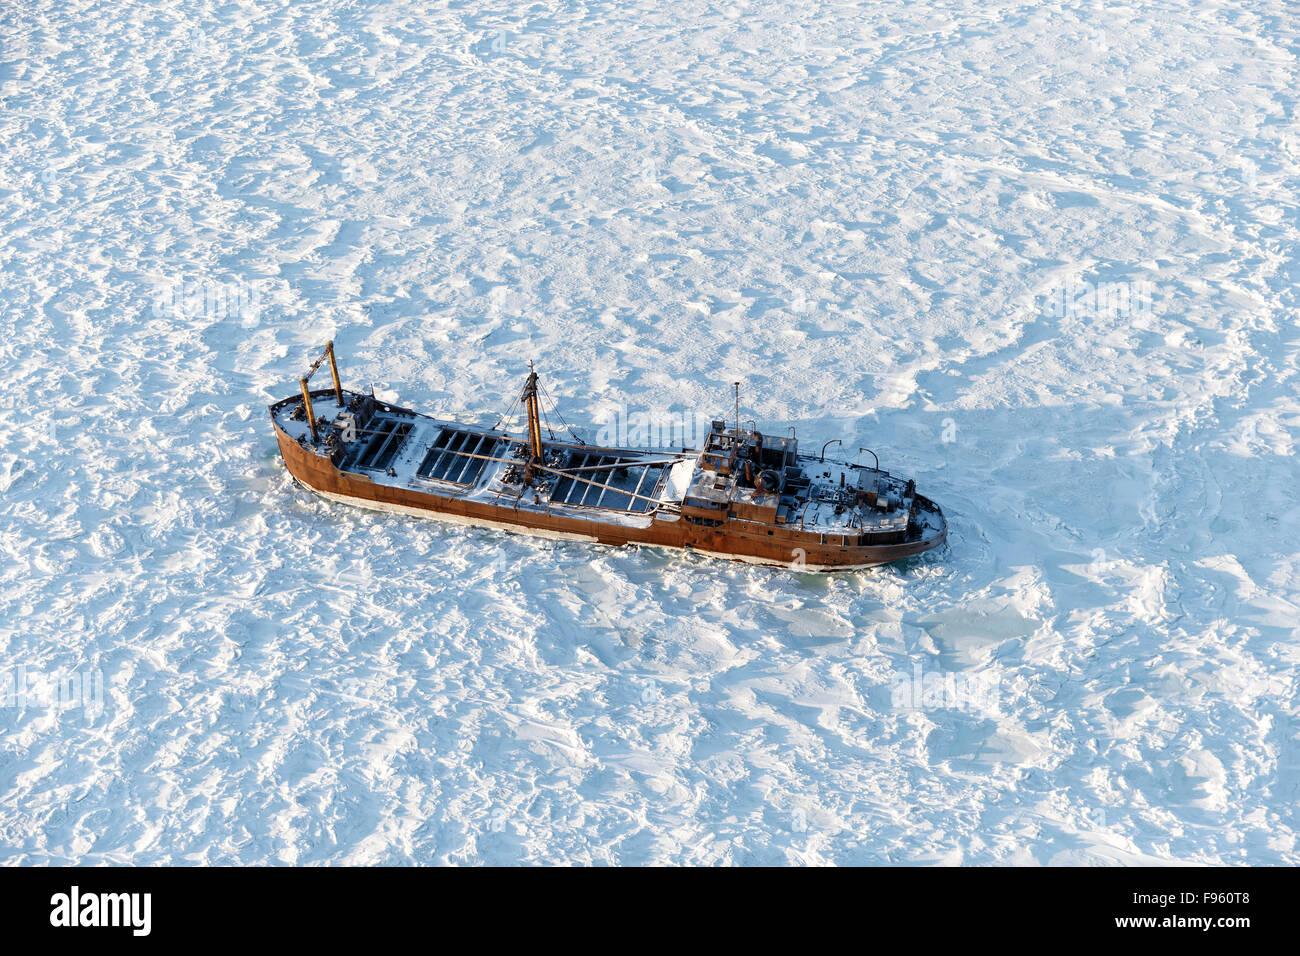 Wreck of the Ithaca, a small freighter that ran  aground during a storm on September 14, 1960, near Churchill, Manitoba. - Stock Image